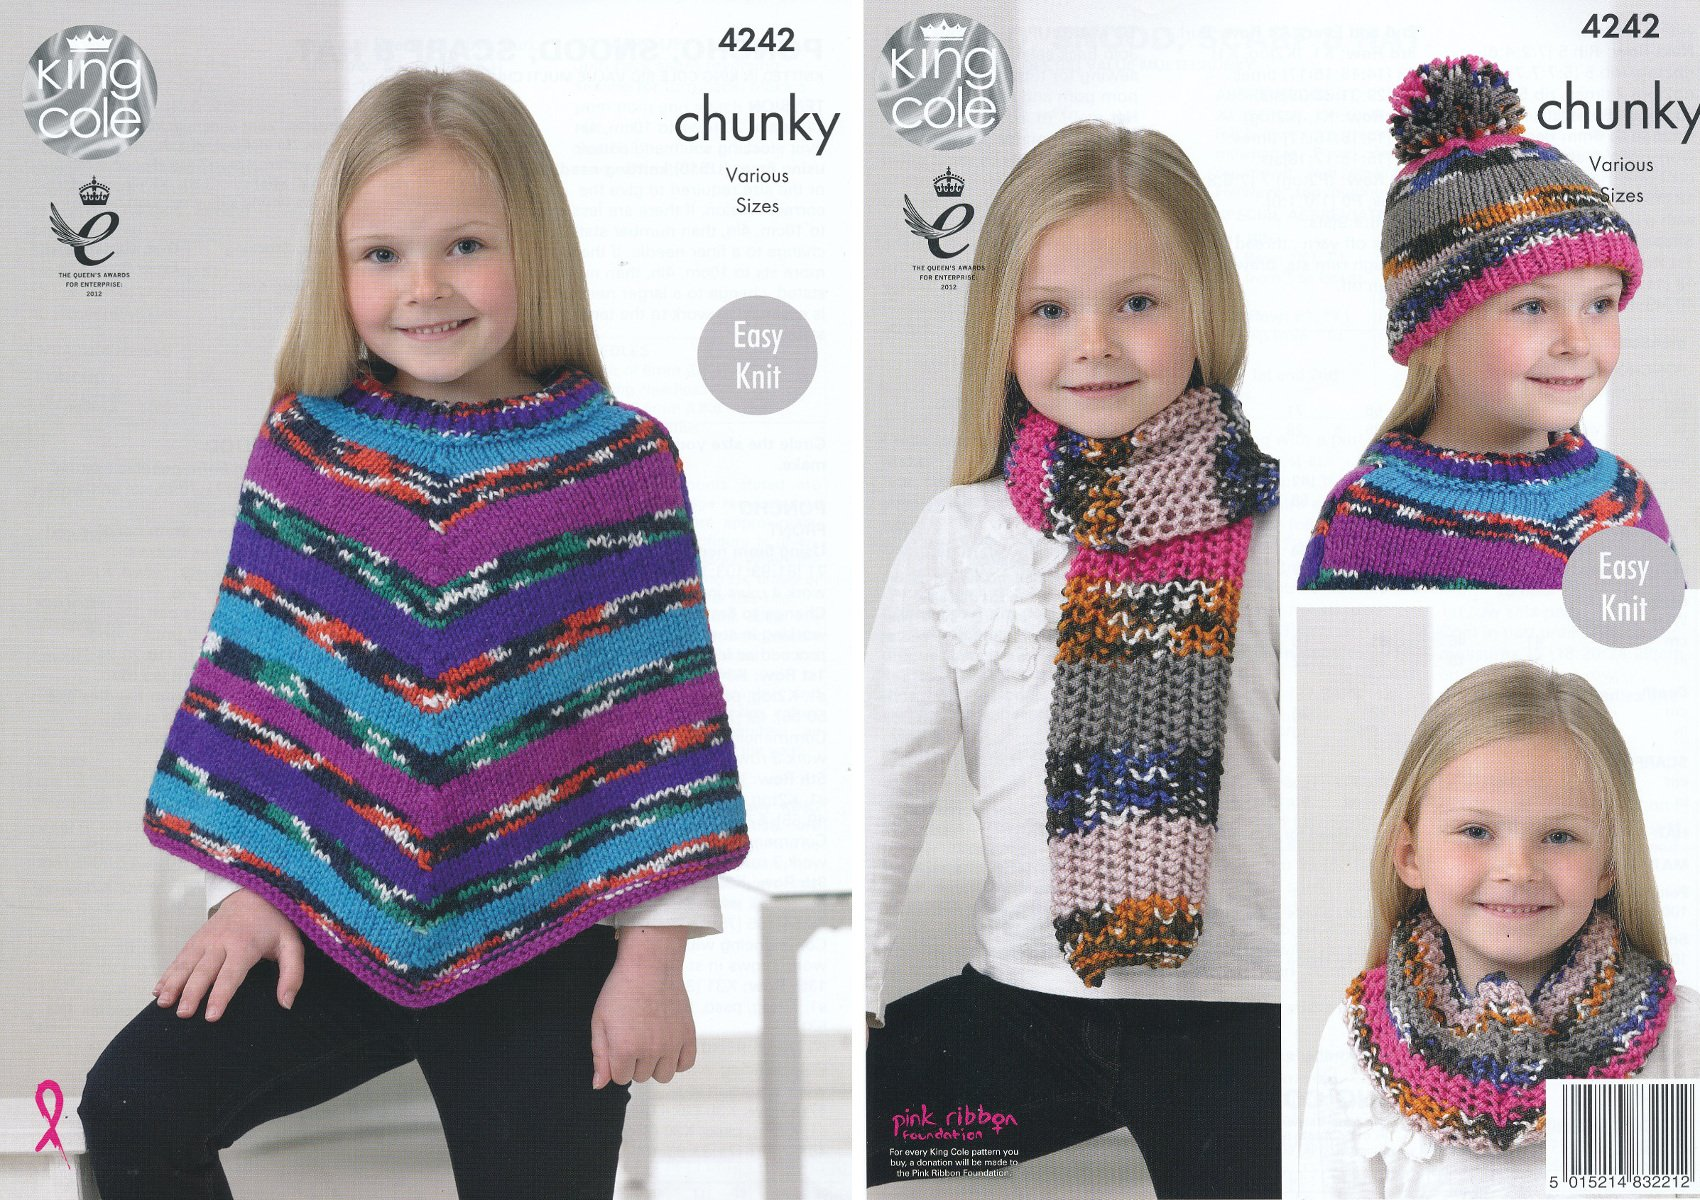 658a473426b Get Quotations · King Cole Girls Big Value Multi Chunky Knitting Pattern  Easy Knit Poncho Snood Scarf   Hat